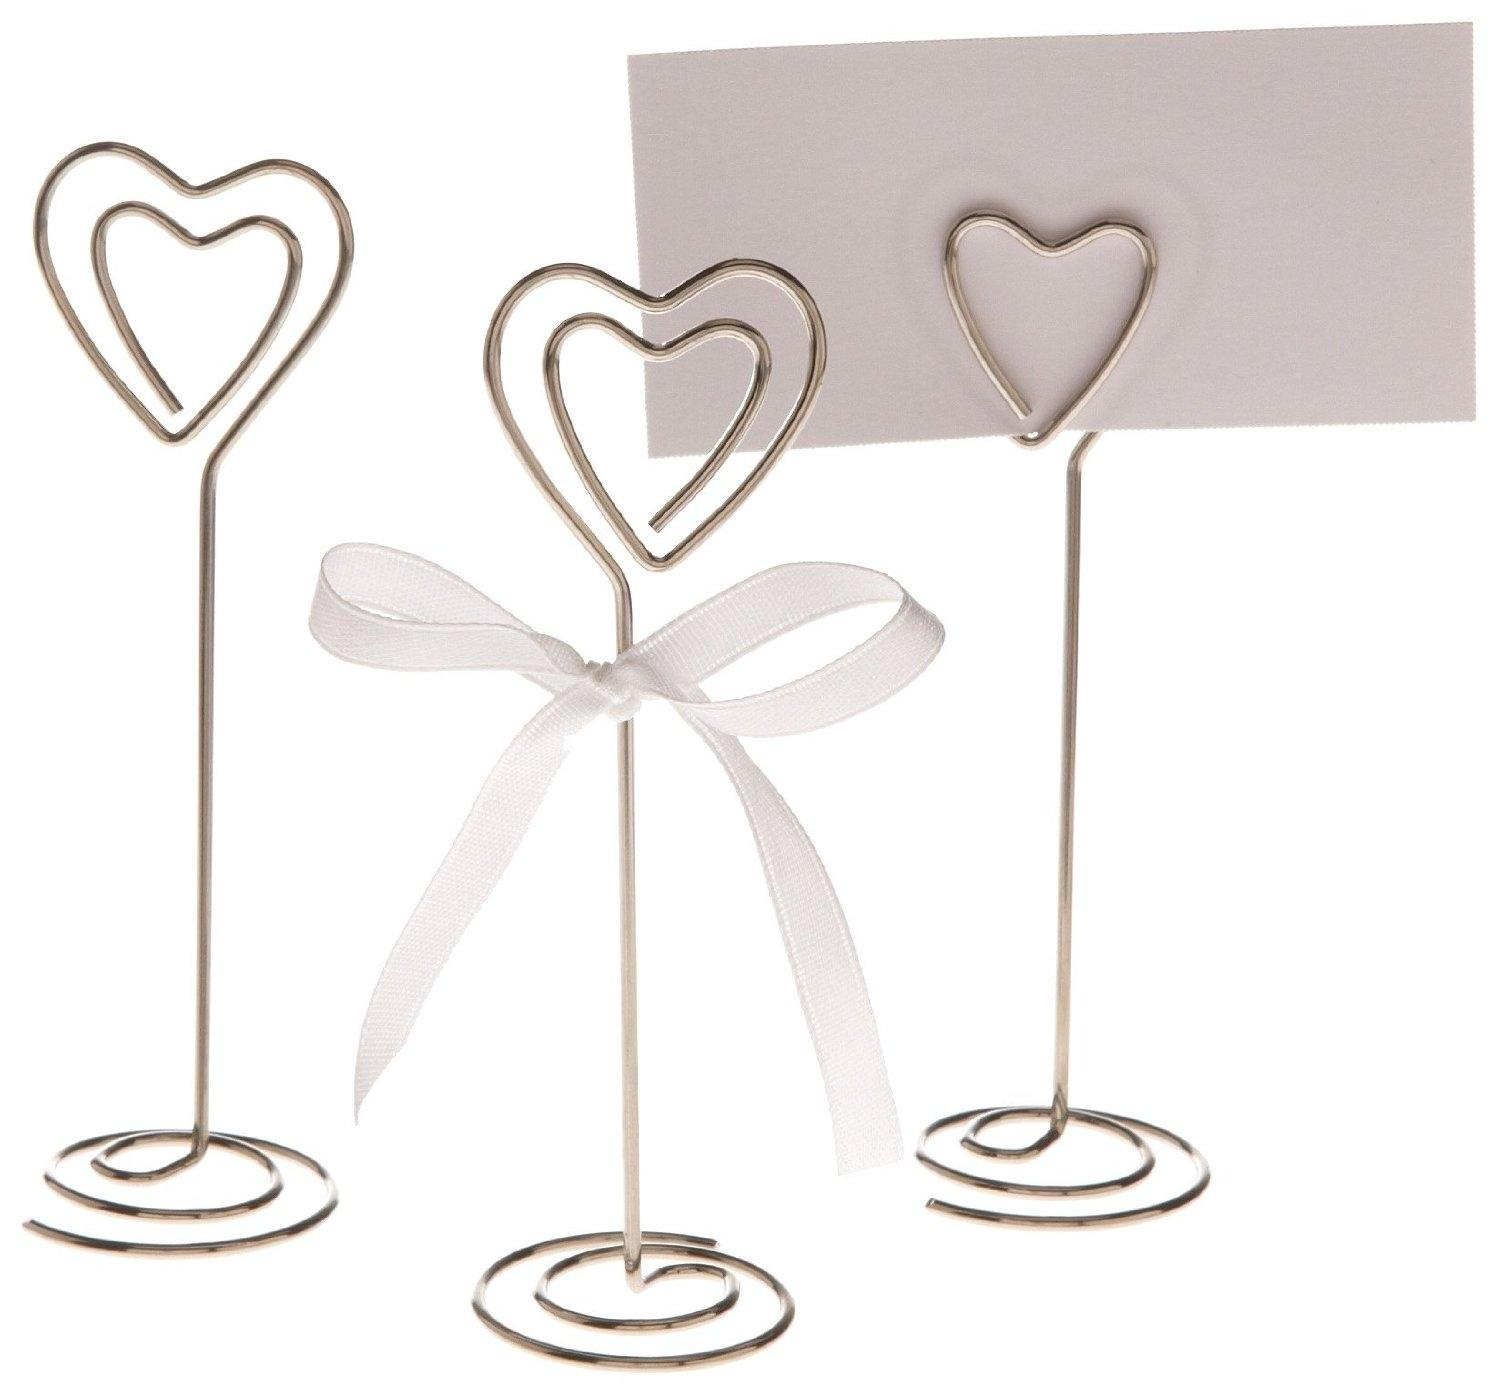 silver 12x heart shape table number holder place card holders clips